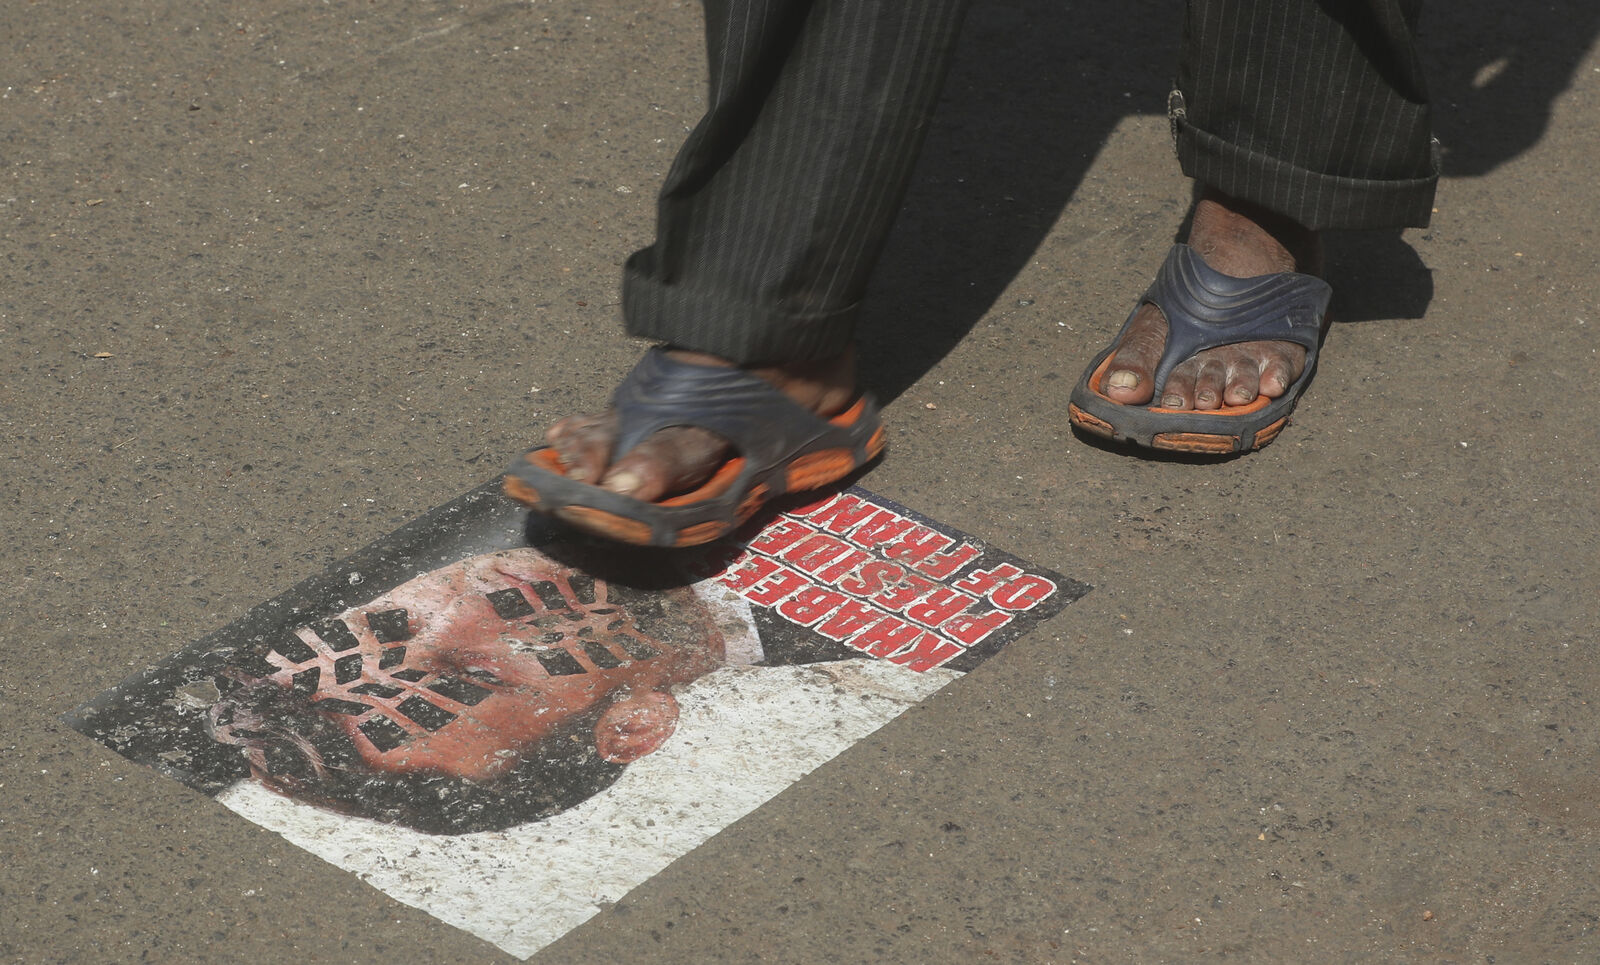 A man walks on a defaced image of French President Emmanuel Macron pasted on a street in Mumbai, India, Friday, Oct. 30, 2020. (AP Photo/Rafiq Maqbool)